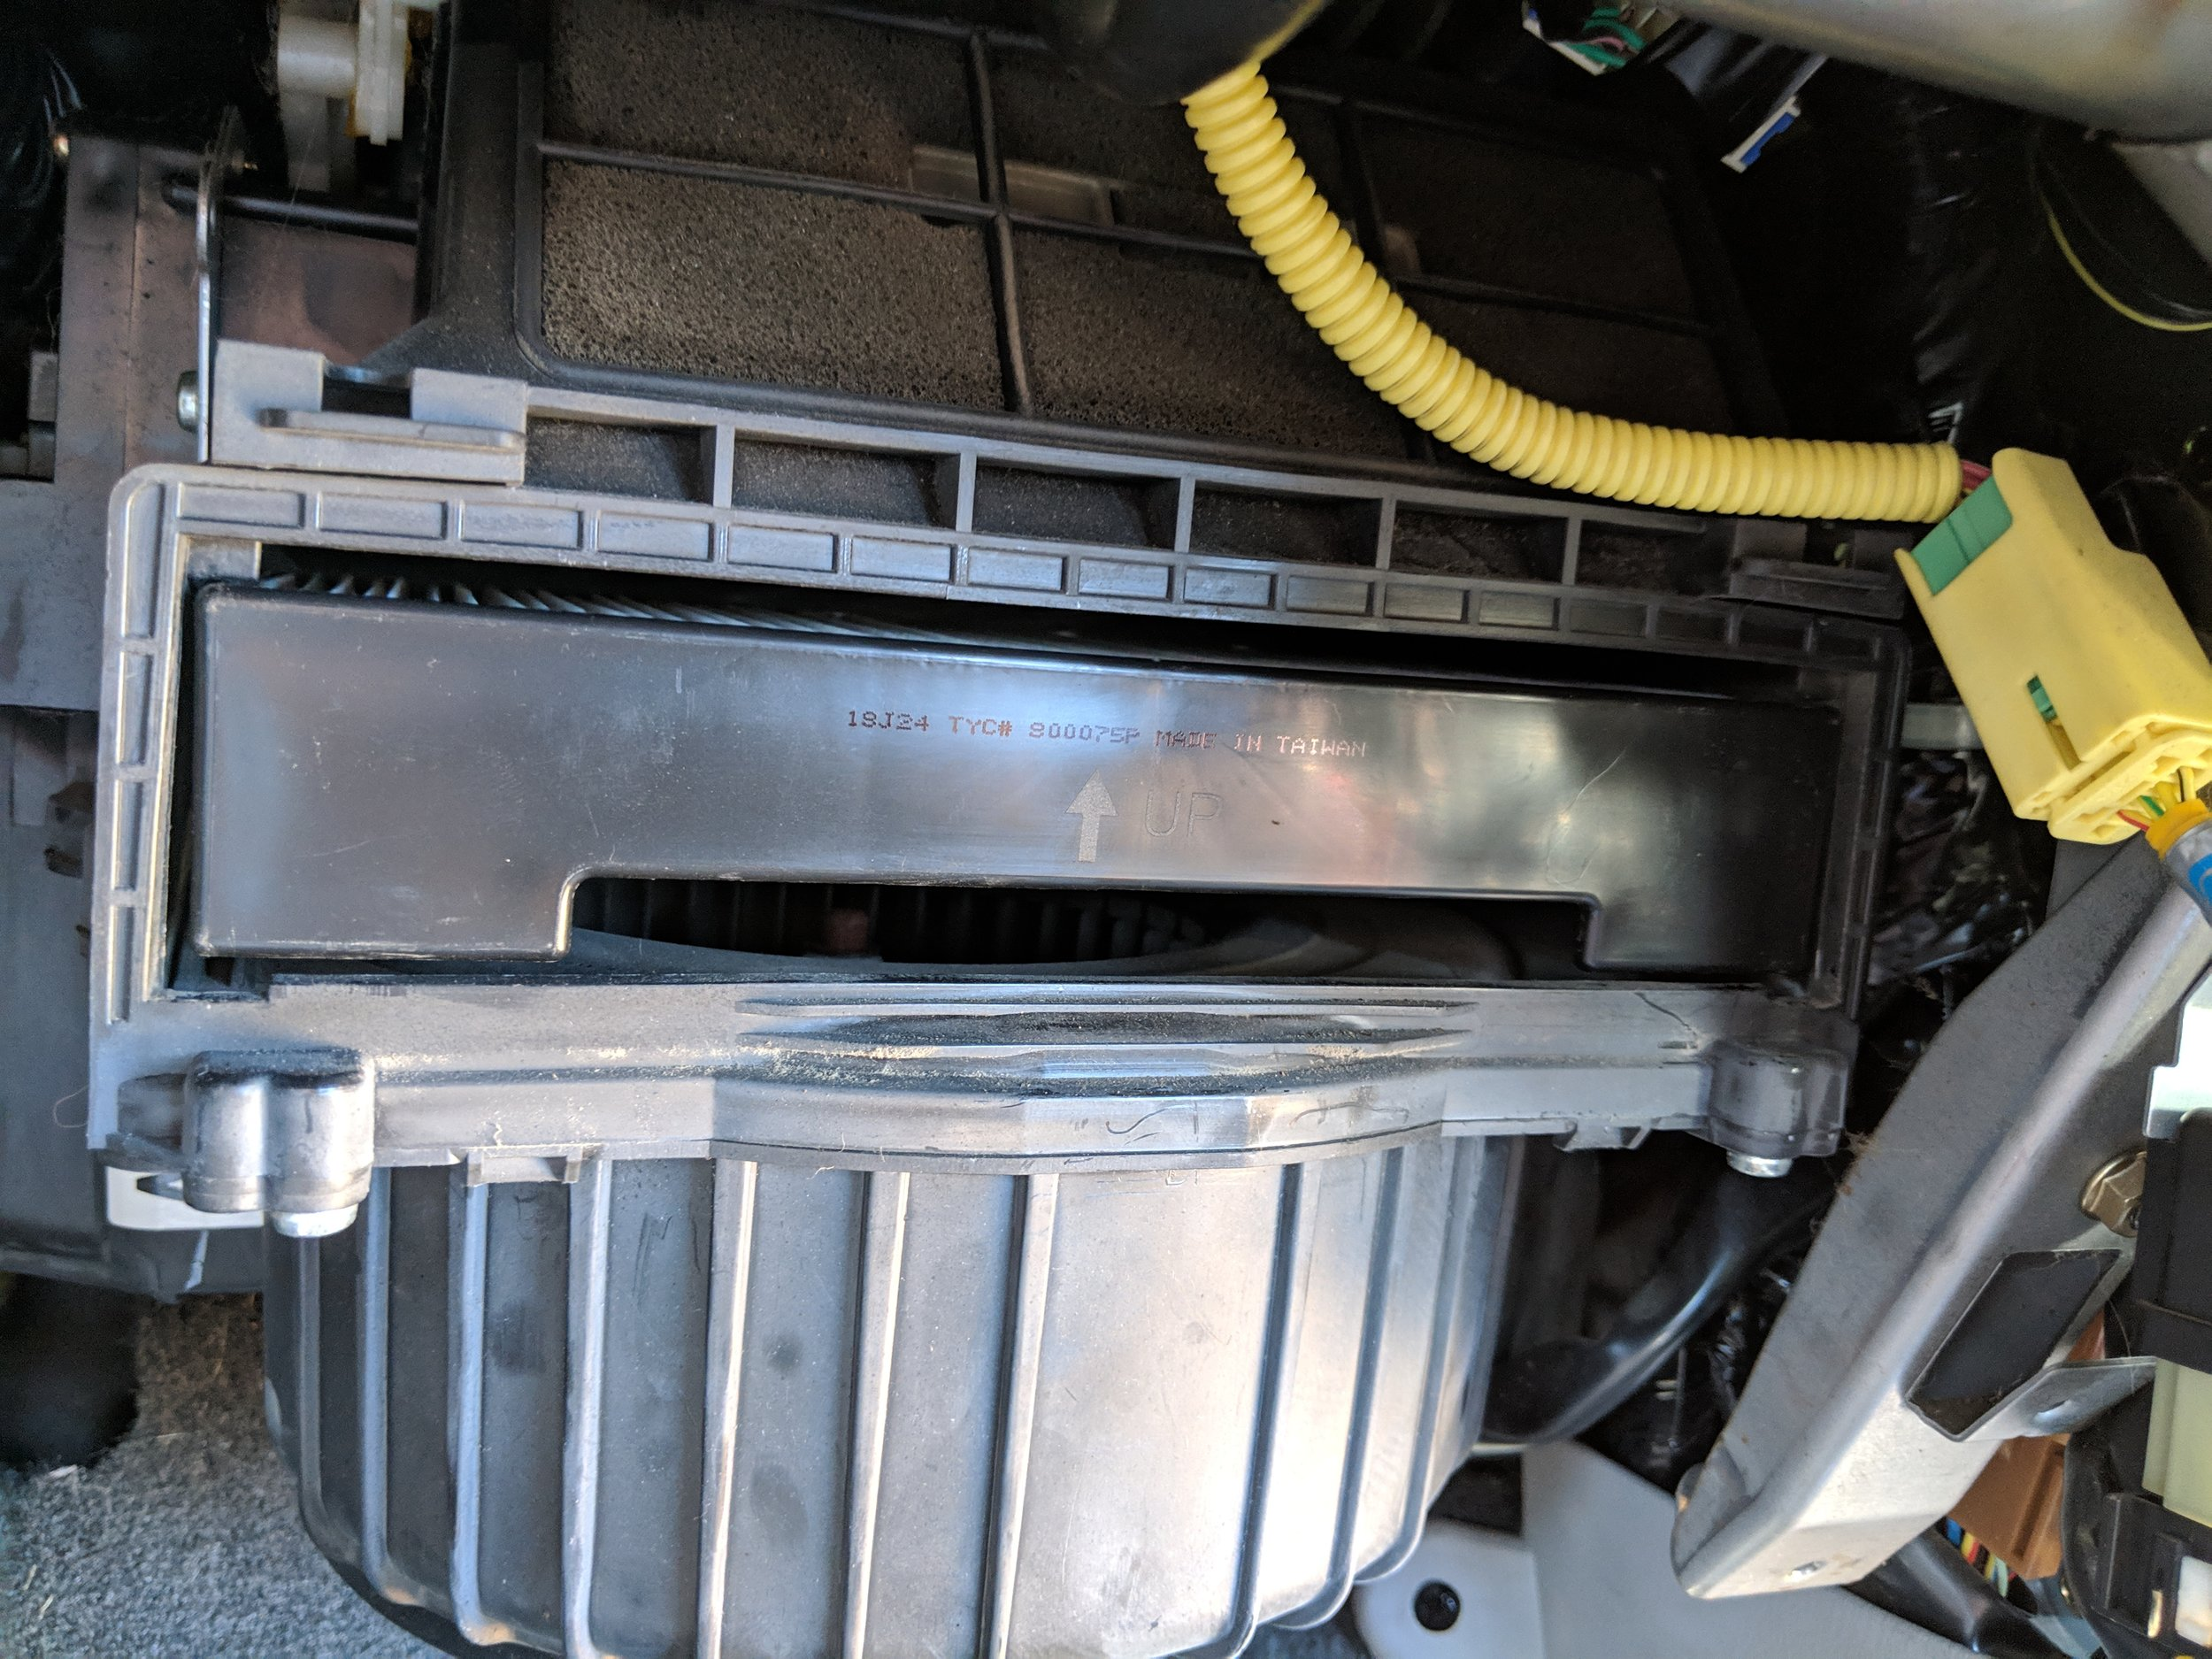 With the cover off, there is the air filter.